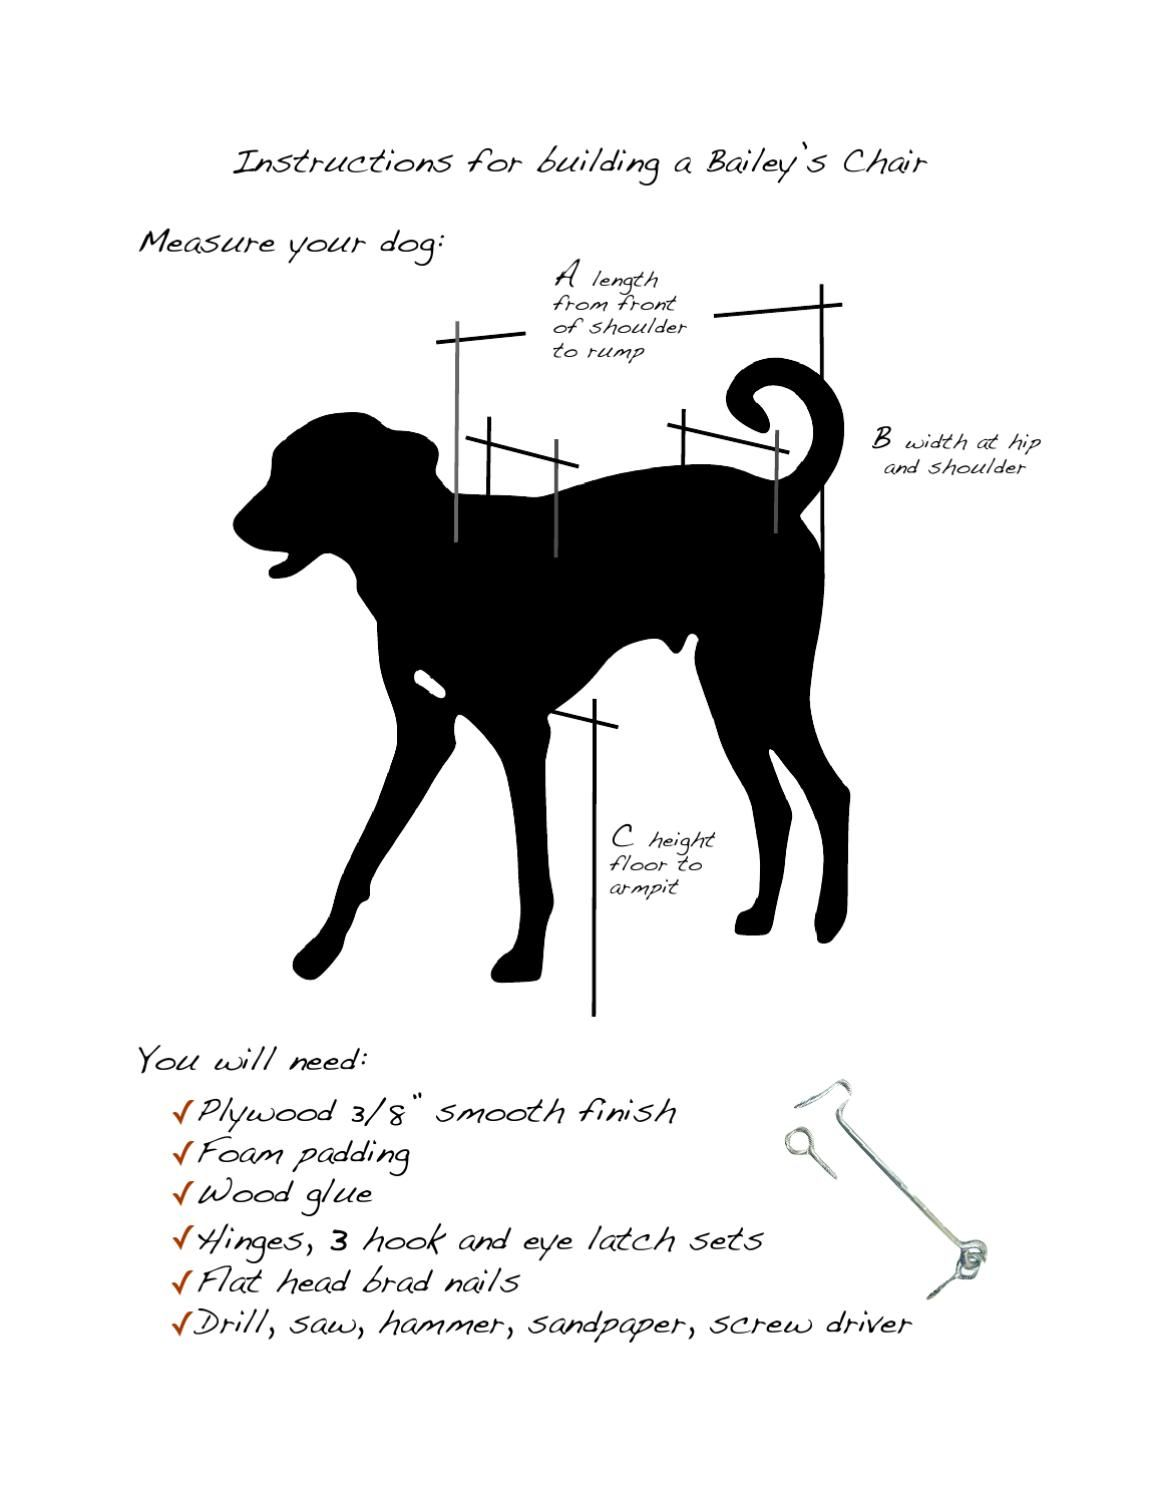 plans for building a bailey s chair for a megaesophagus dog [ 1159 x 1500 Pixel ]